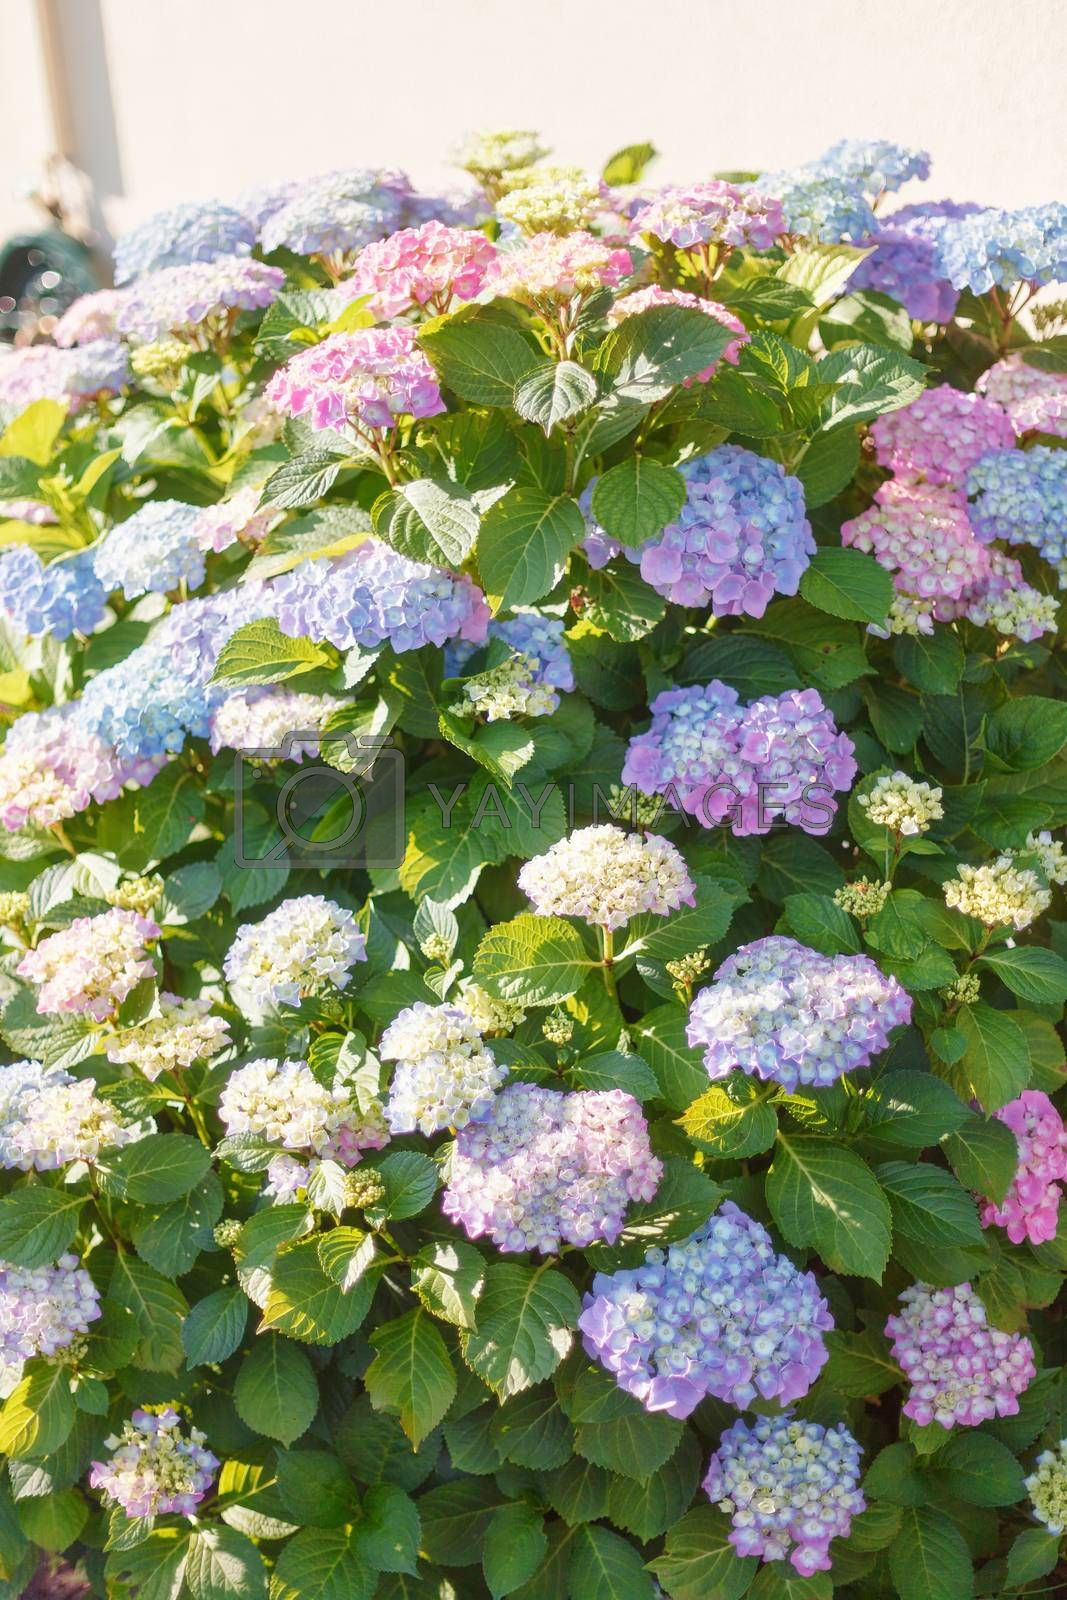 Flowering hydrangea bush covered in assorted pink and blue clusters of flowers in sunshine growing in a garden, close up view